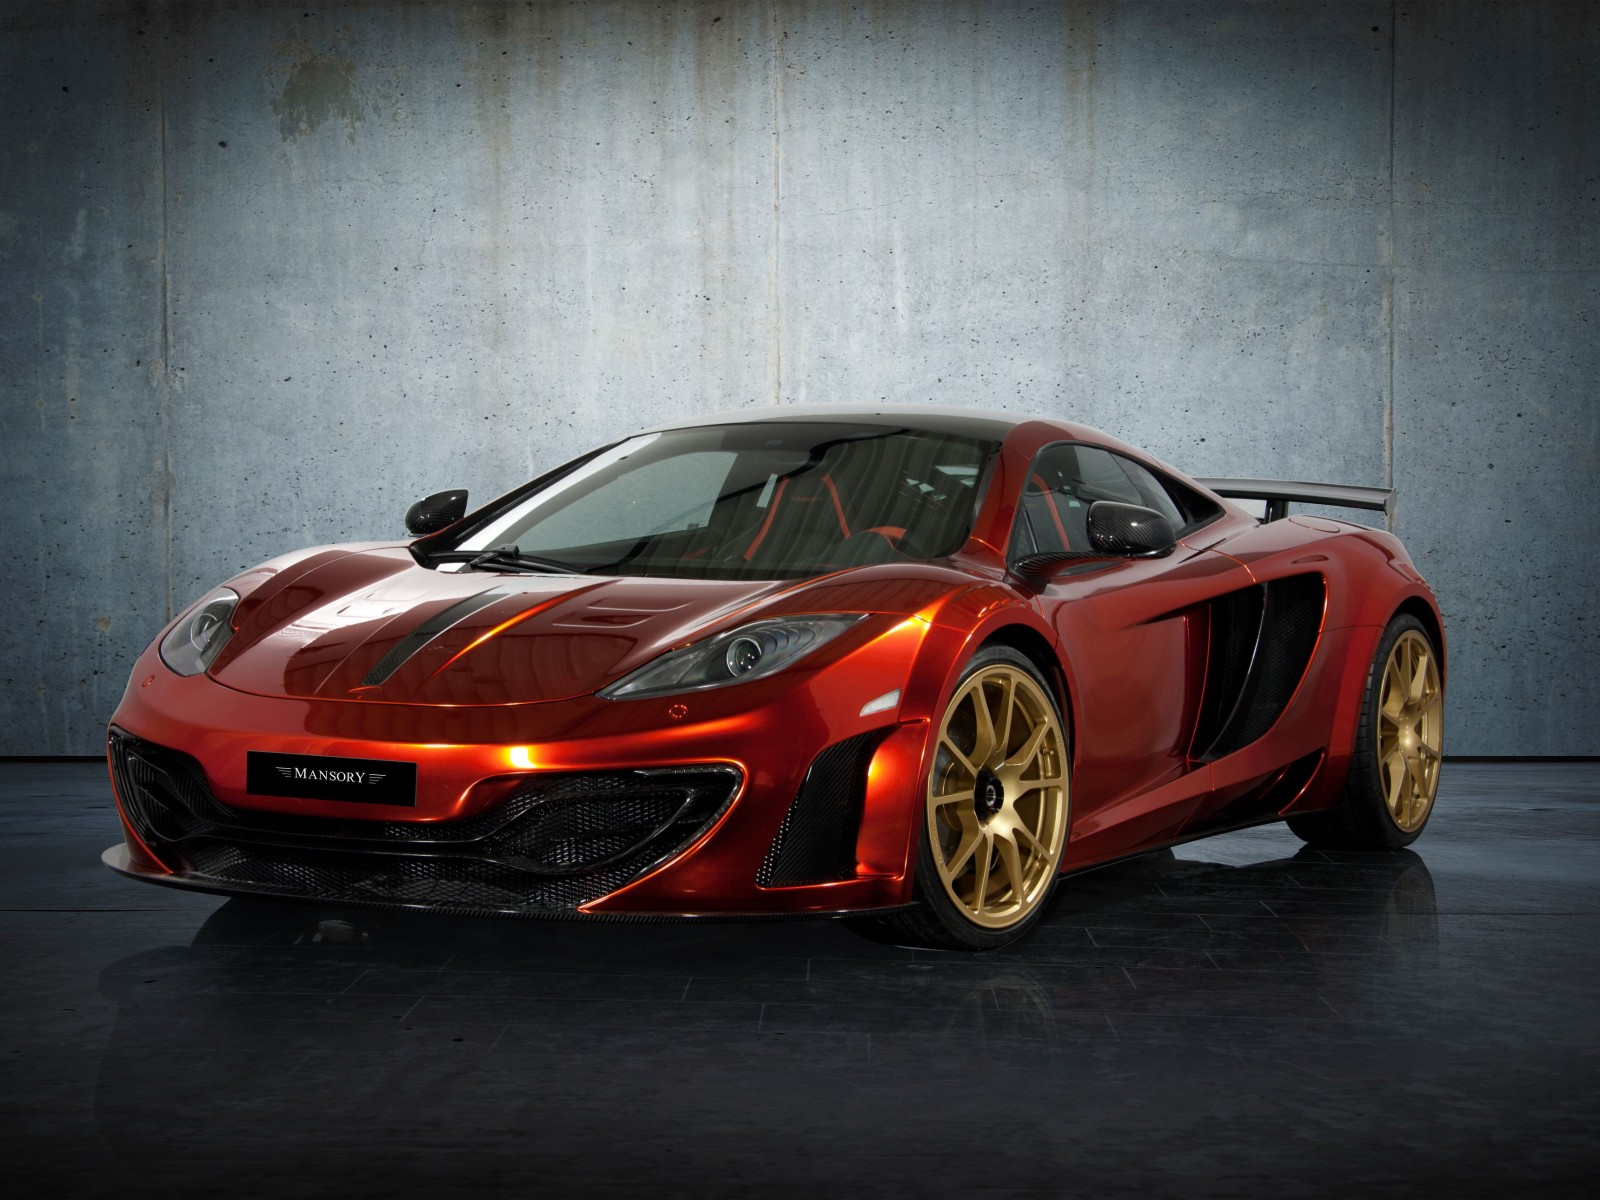 McLaren MP4-12Cf By Mansory Wallpaper for Desktop 1600x1200